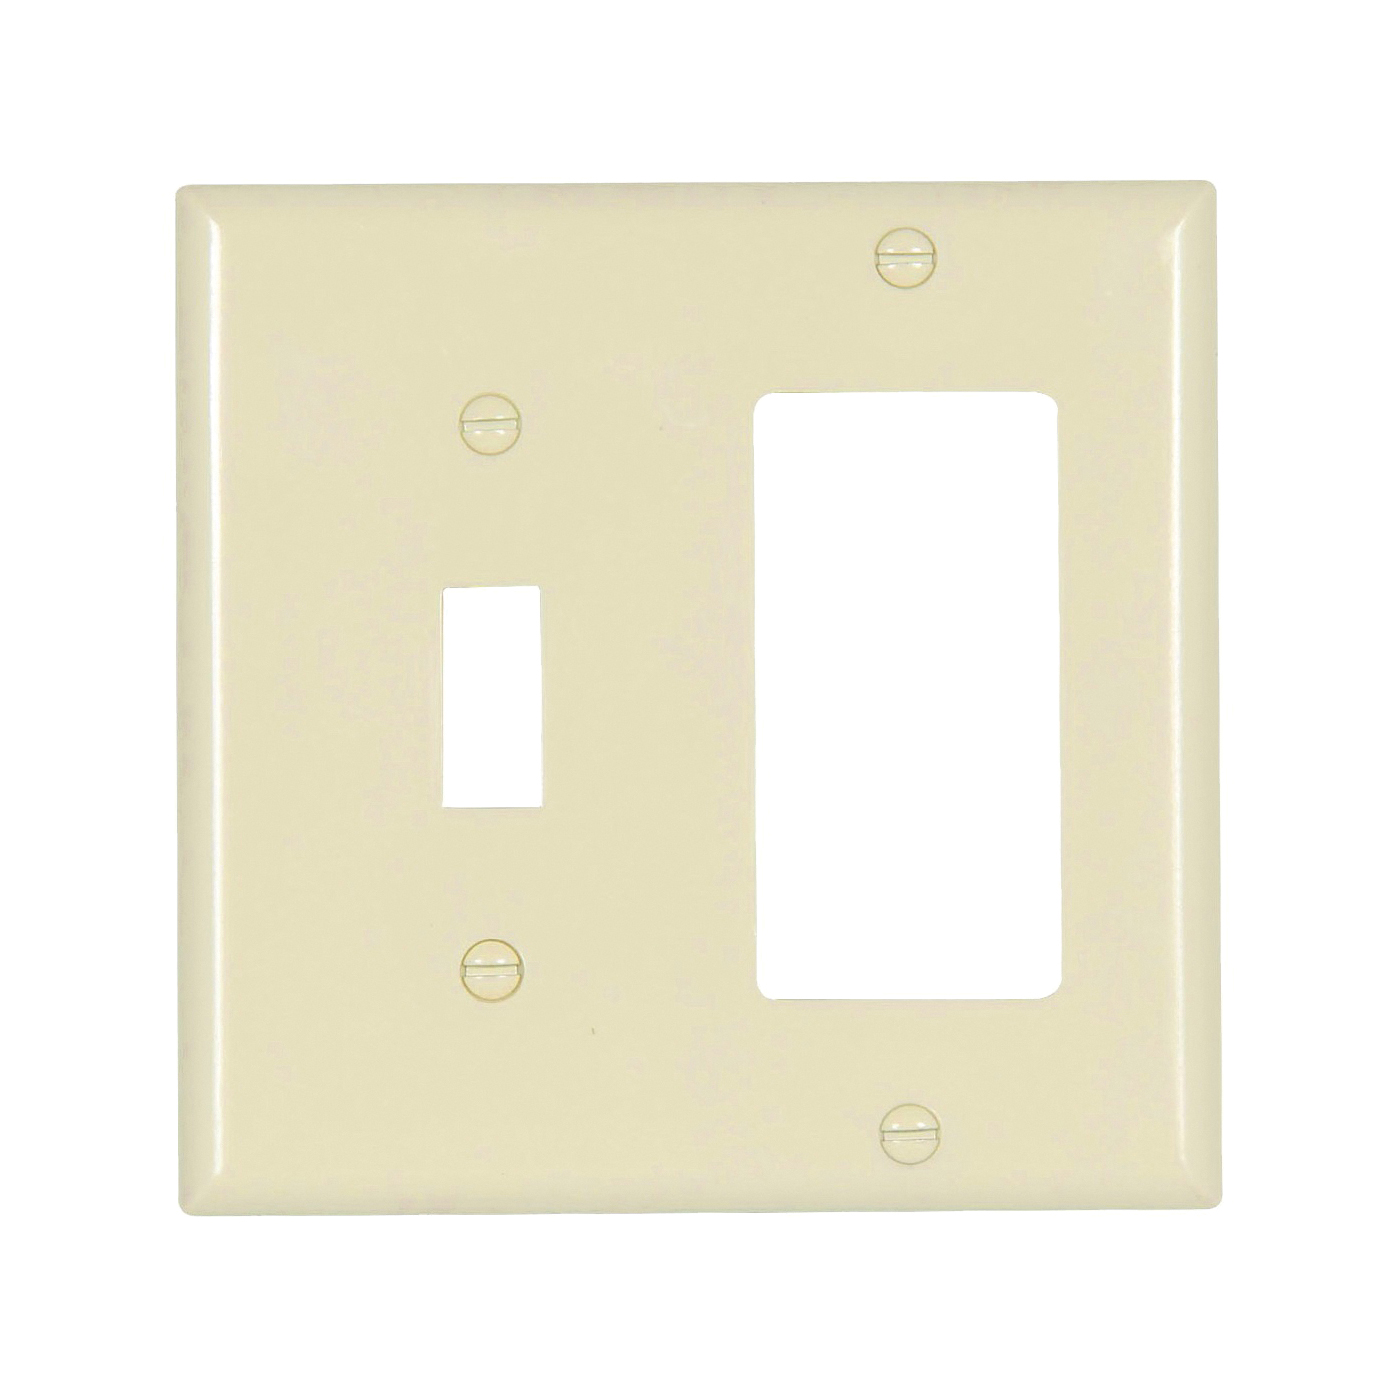 Picture of Eaton Wiring Devices 2153LA-BOX Wallplate, 4-1/2 in L, 4-9/16 in W, 2-Gang, Thermoset, Light Almond, High-Gloss